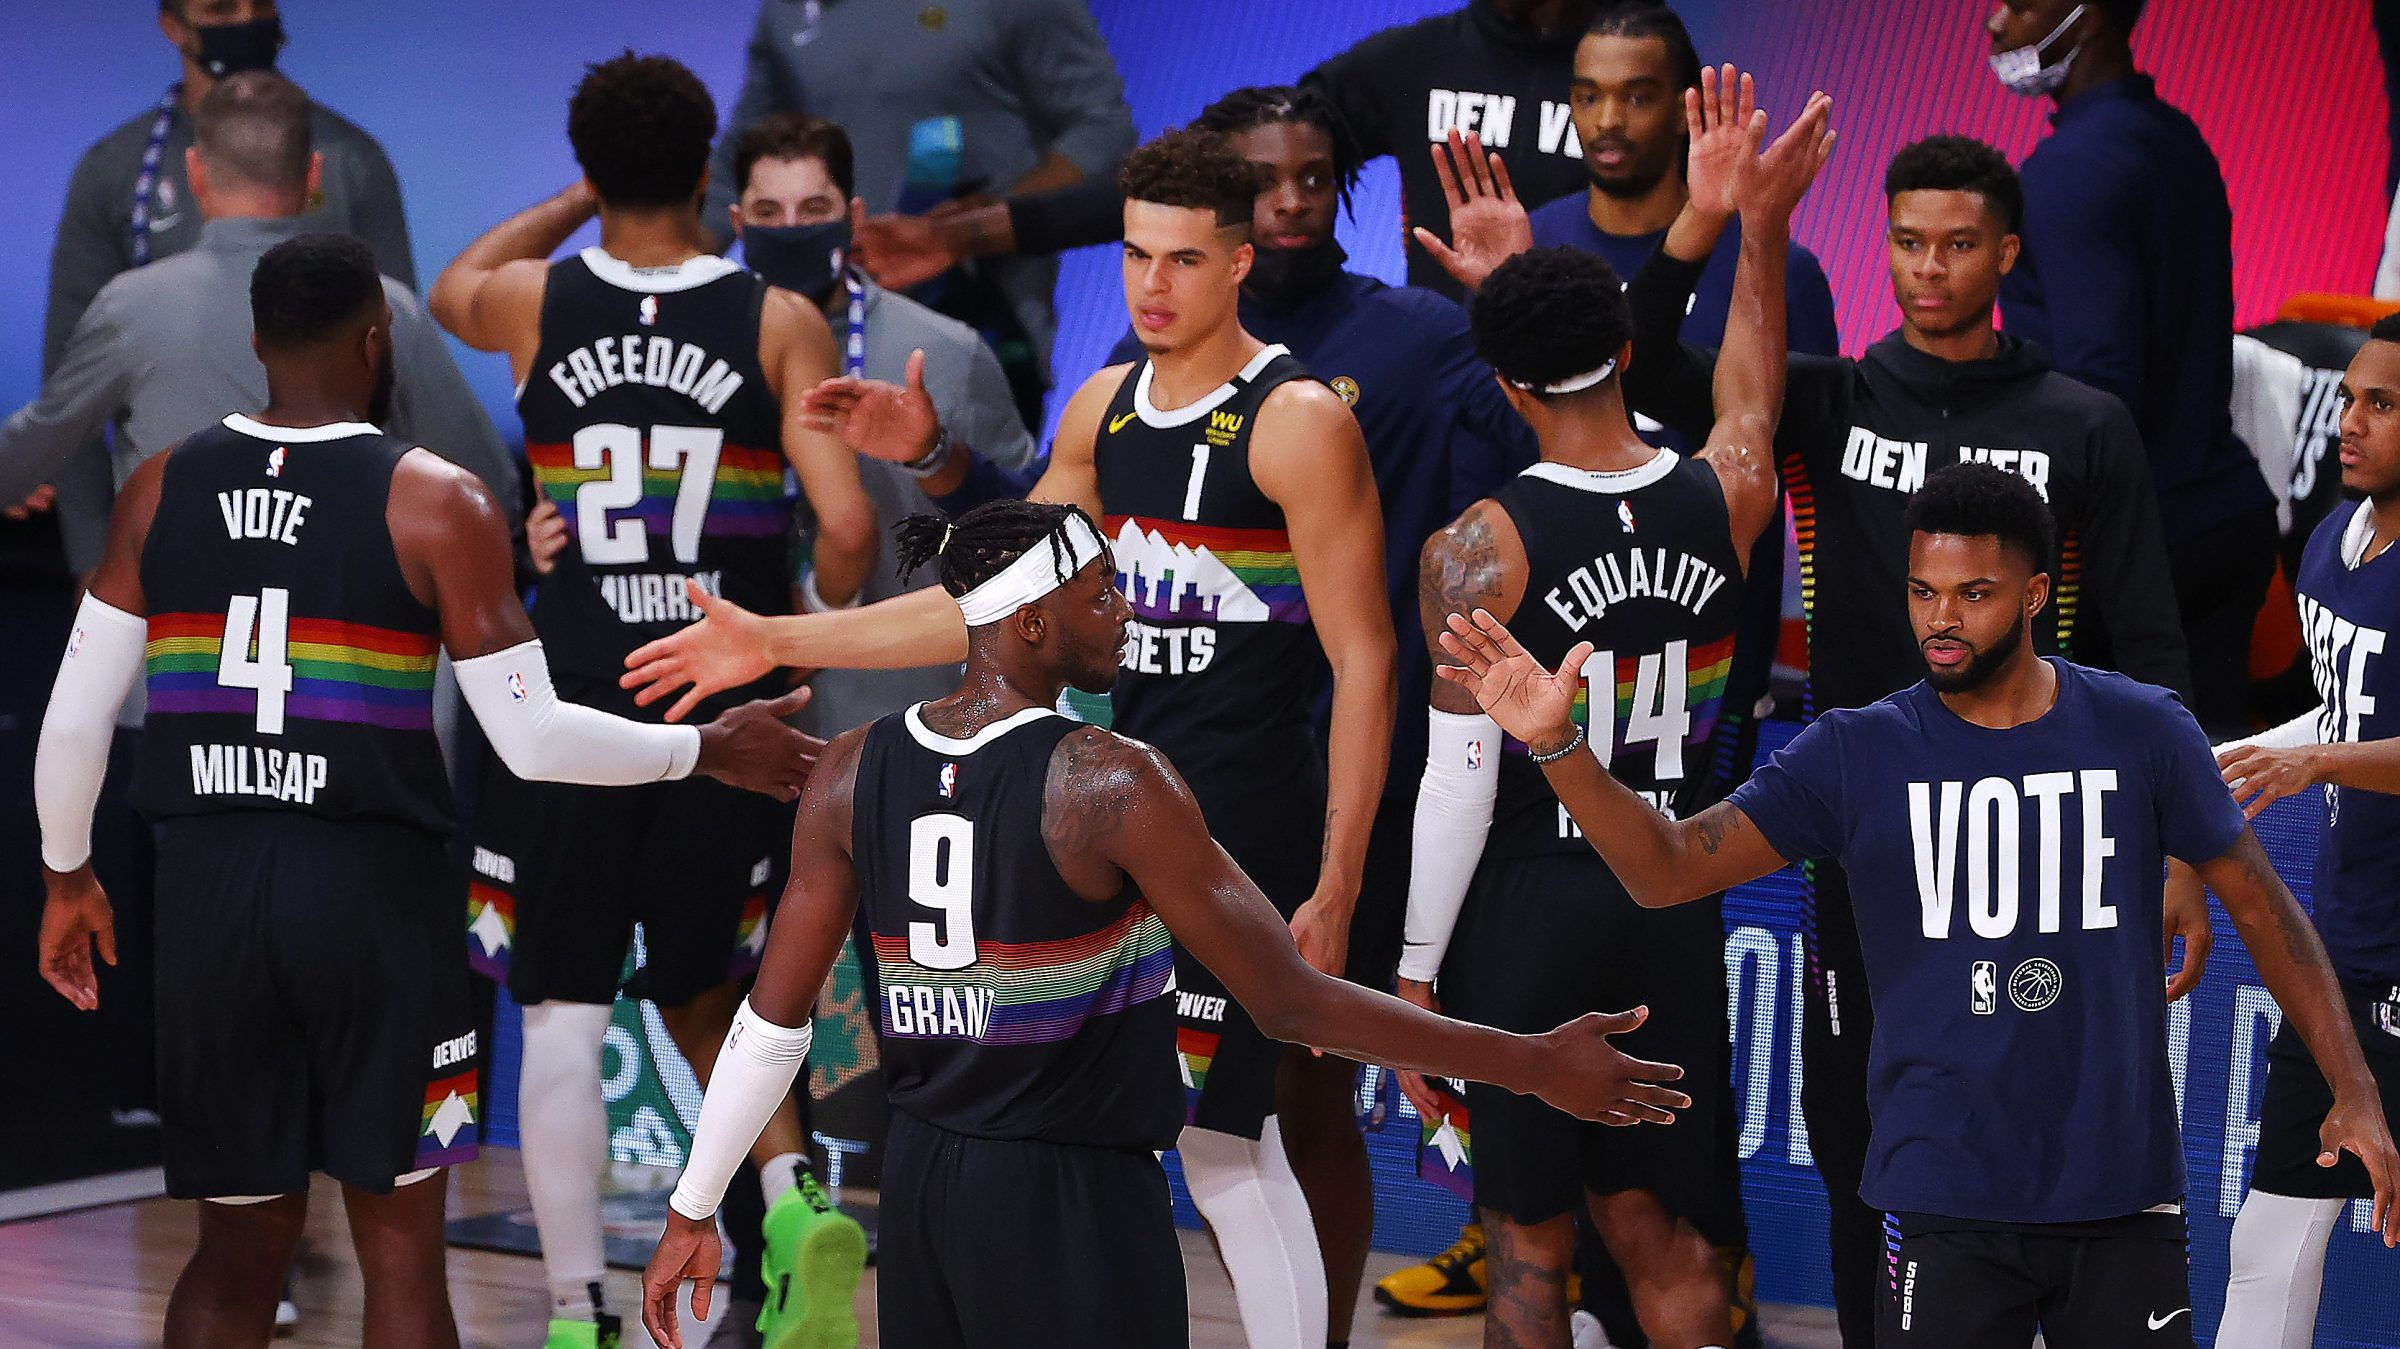 Denver Nuggets players celebrate their Game 3 victory over the Los Angeles Lakers in the 2020 Western Conference Finals.